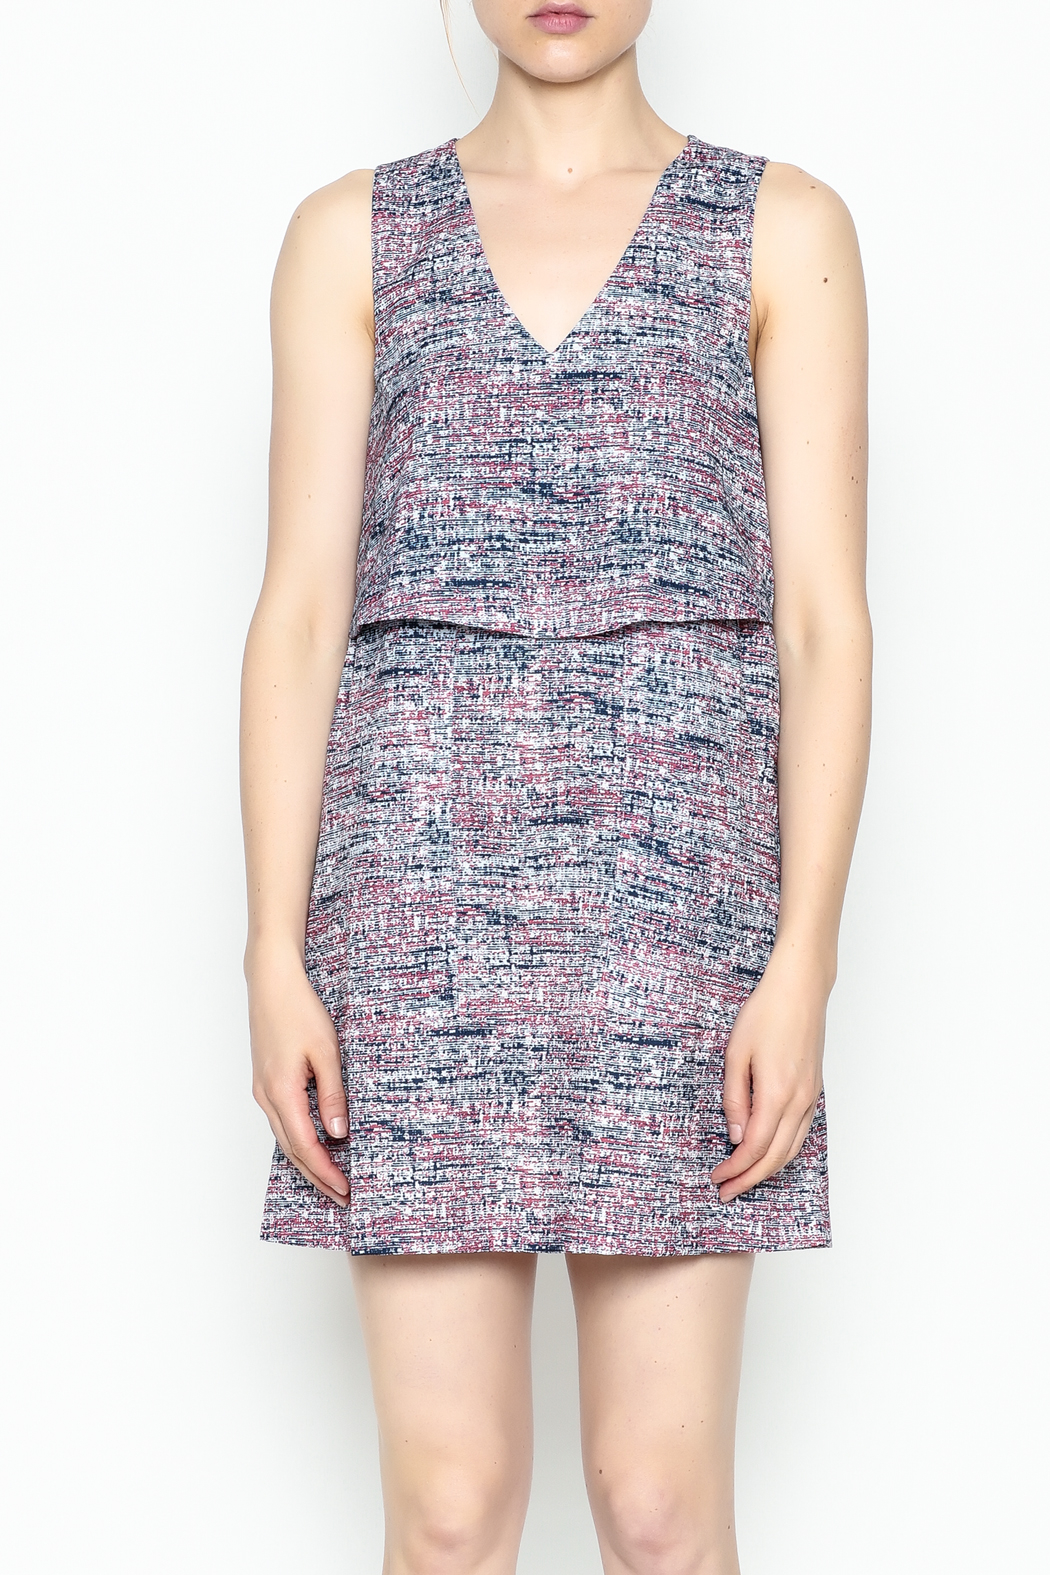 Zoa Digital Print Dress - Front Cropped Image